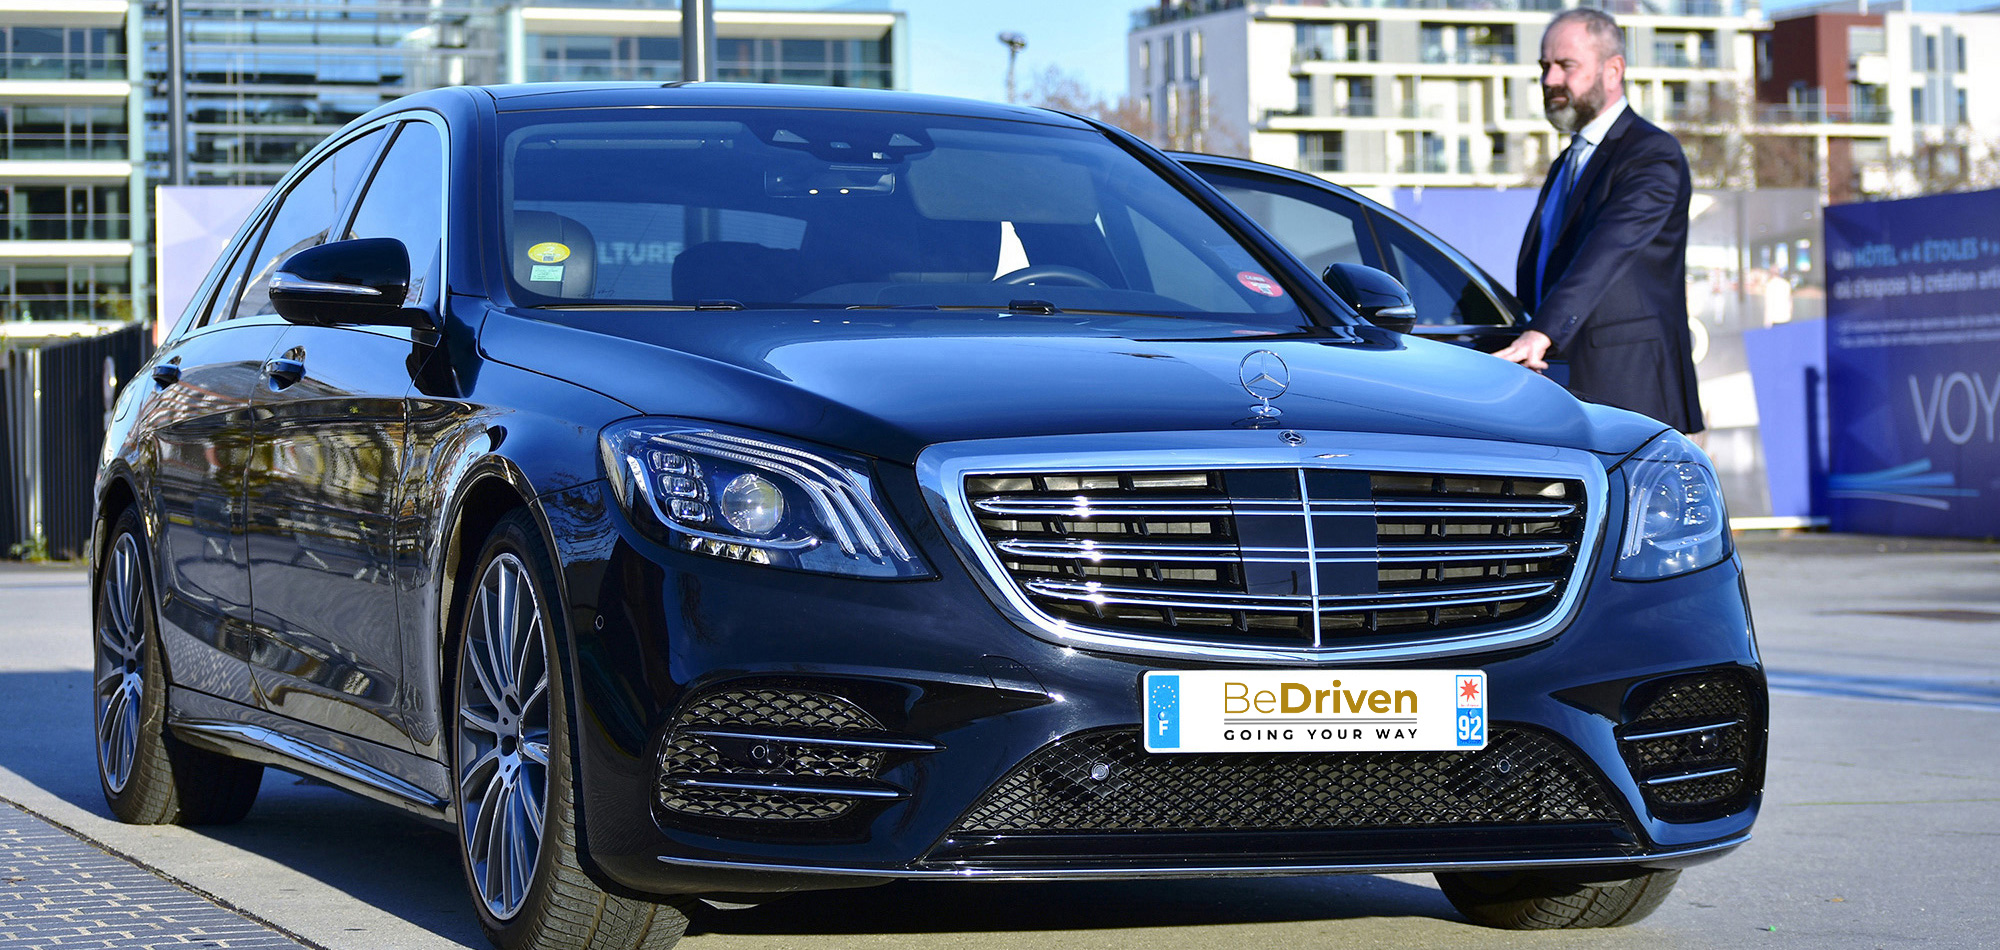 Picture ©BeDriven 2021: LUXURY FLEET safety and comfort